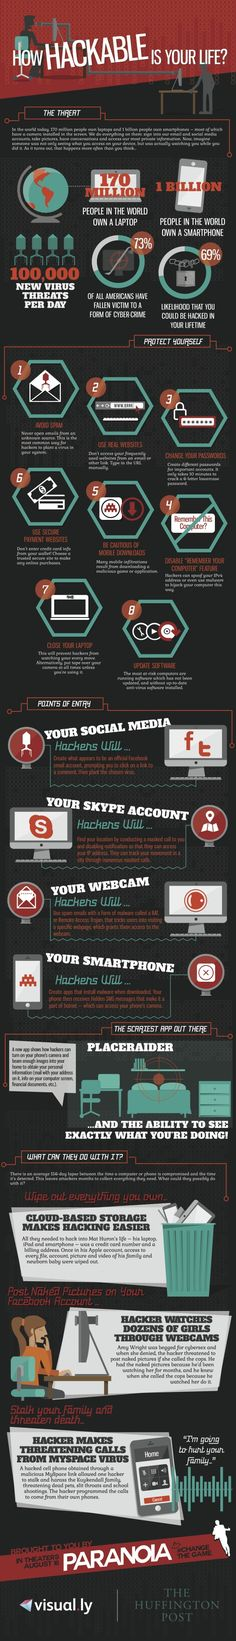 How Hackable is Your Life? #infografía